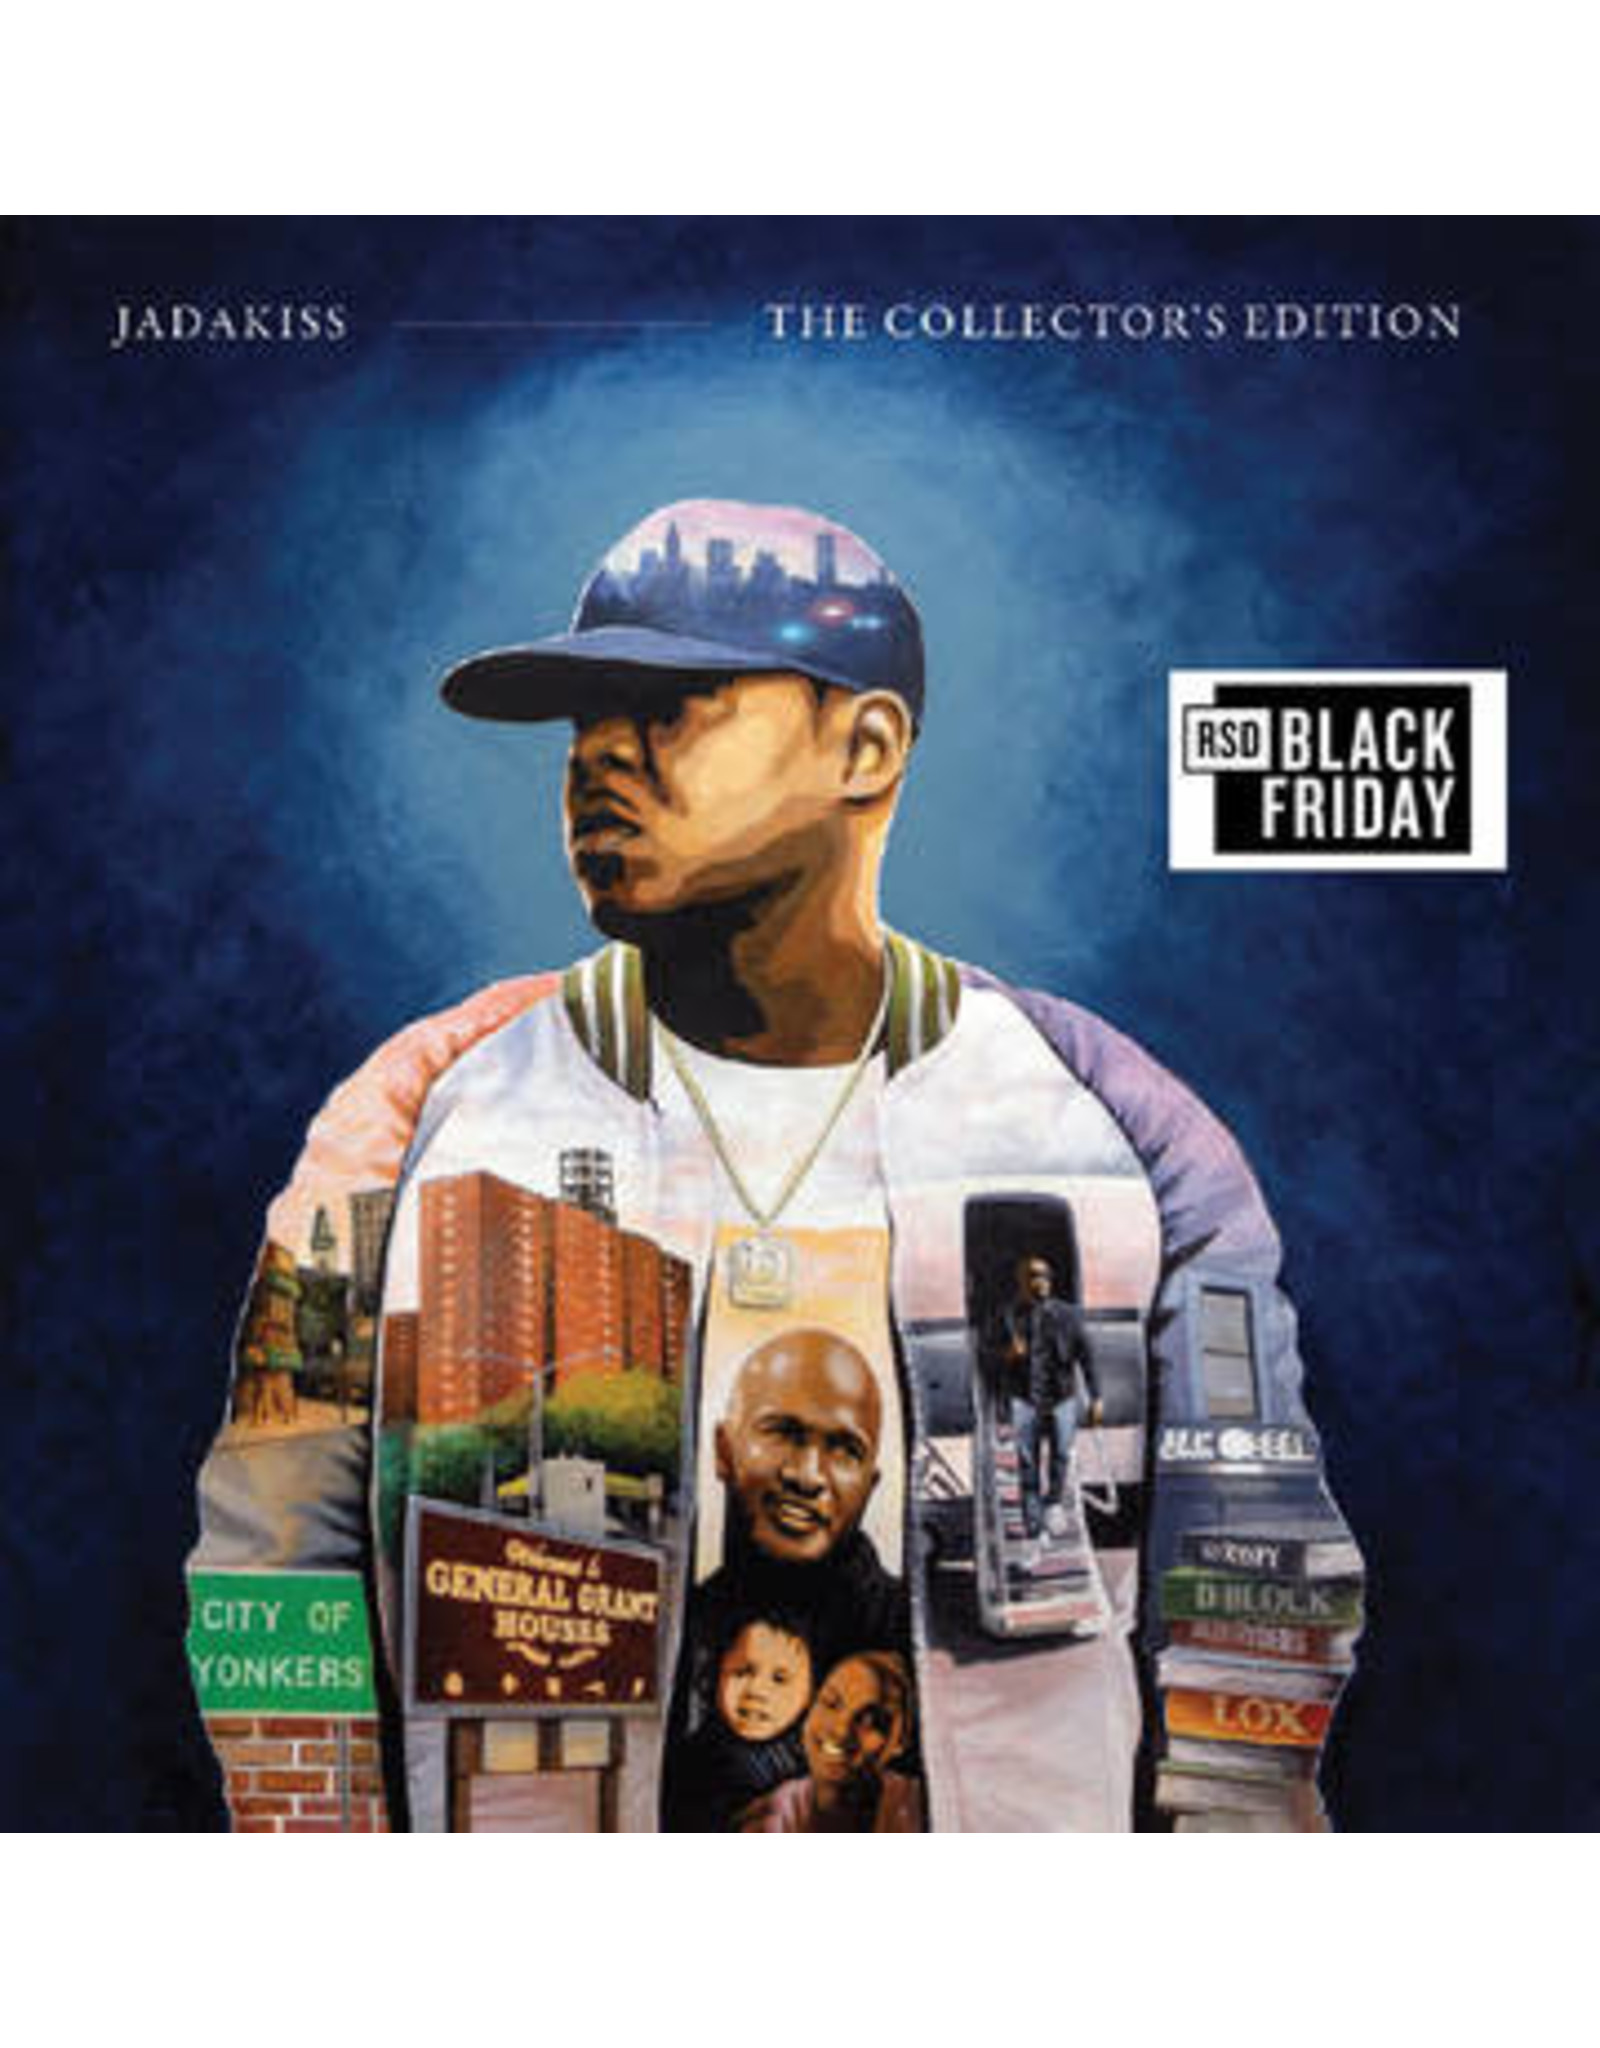 Judakiss - The Collector's Edition (BF2020) 2LP